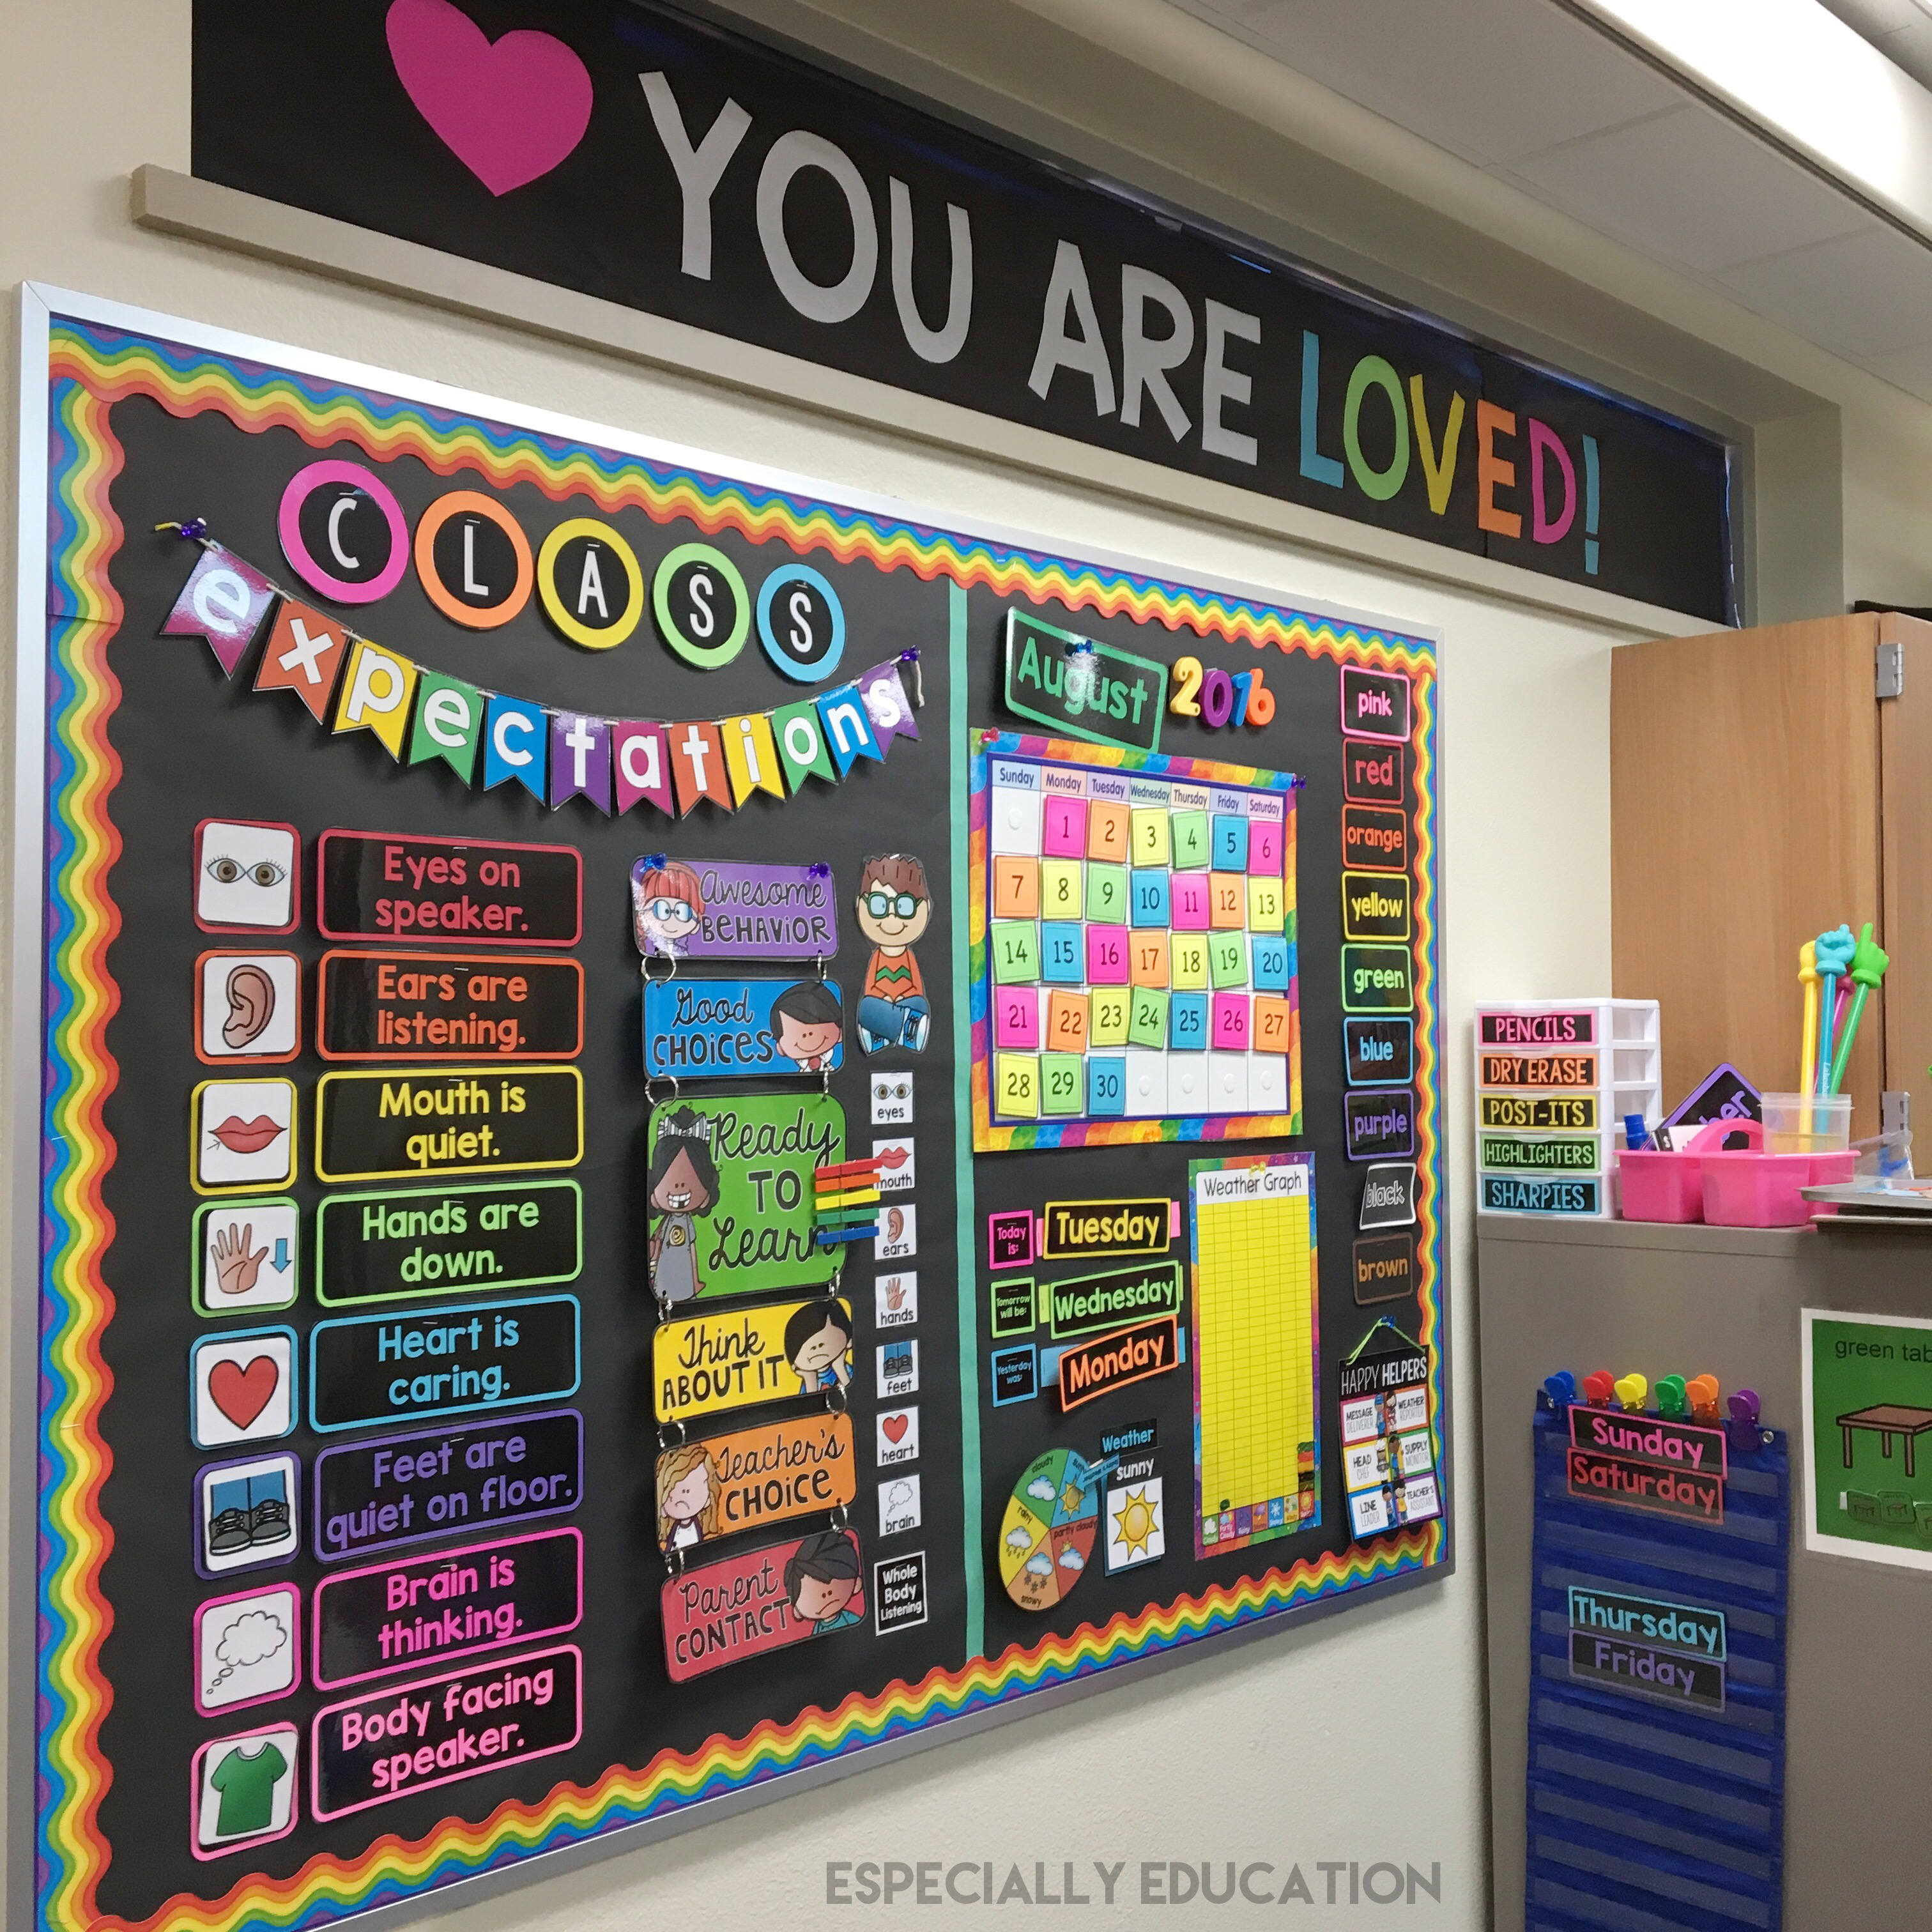 You are loved banner for Art classroom decoration ideas